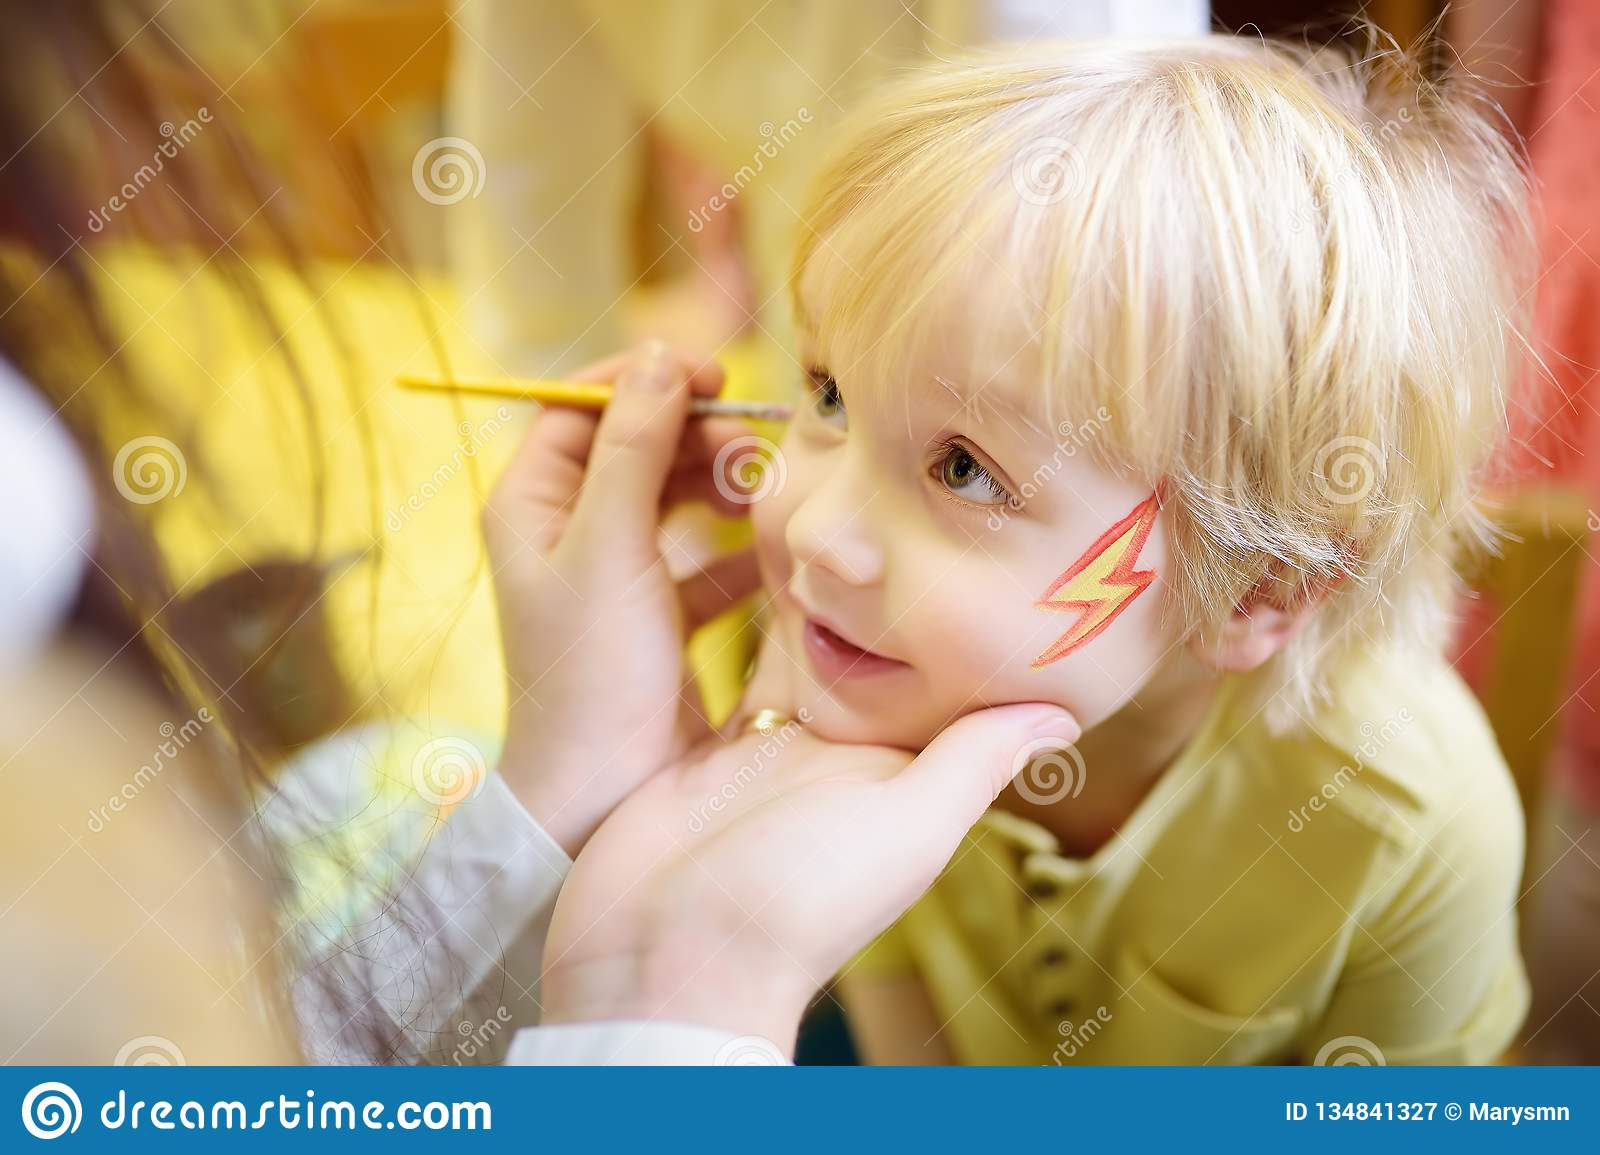 Face Painting For Cute Little Boy During Kids Merriment Stock Image Image Of Child Animation 134841327